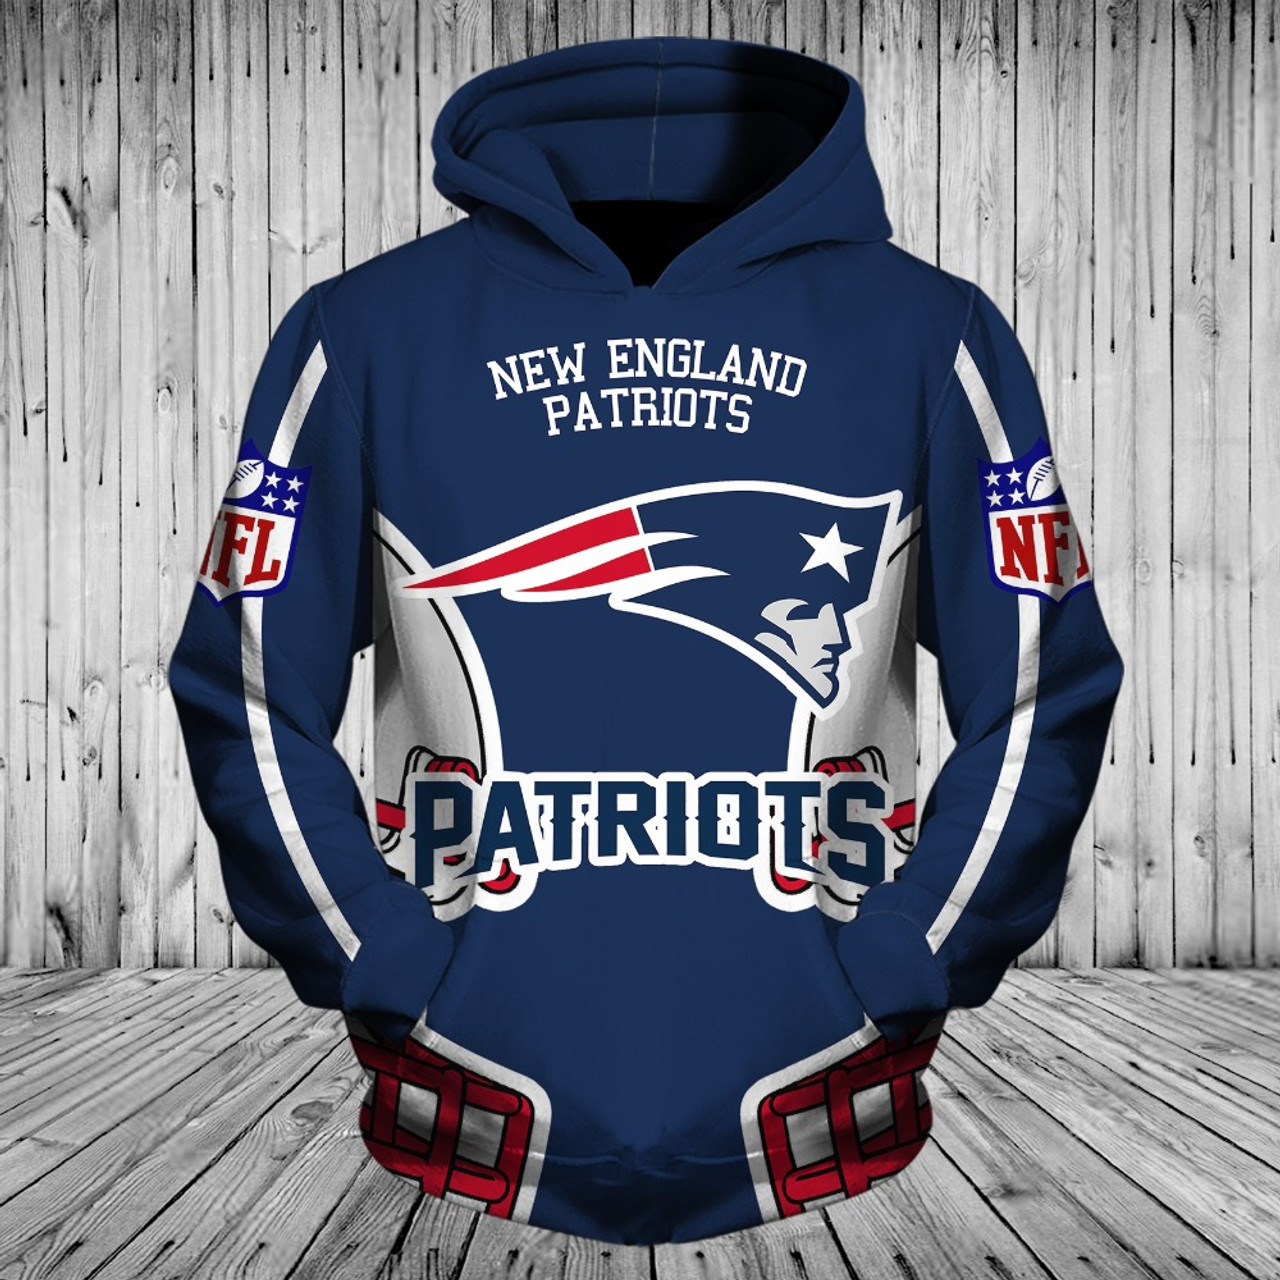 new arrivals 0c6be 6681b **(OFFICIALLY-LICENSED-N.F.L.NEW-ENGLAND-PATRIOTS-POCKET-PULLOVER-HOODIES/GRAPHIC-3D-PRINTED-IN-PATRIOTS-TEAM-COLORS/NICE-DETAILED-PREMIUM-DOUBLE-SIDE...